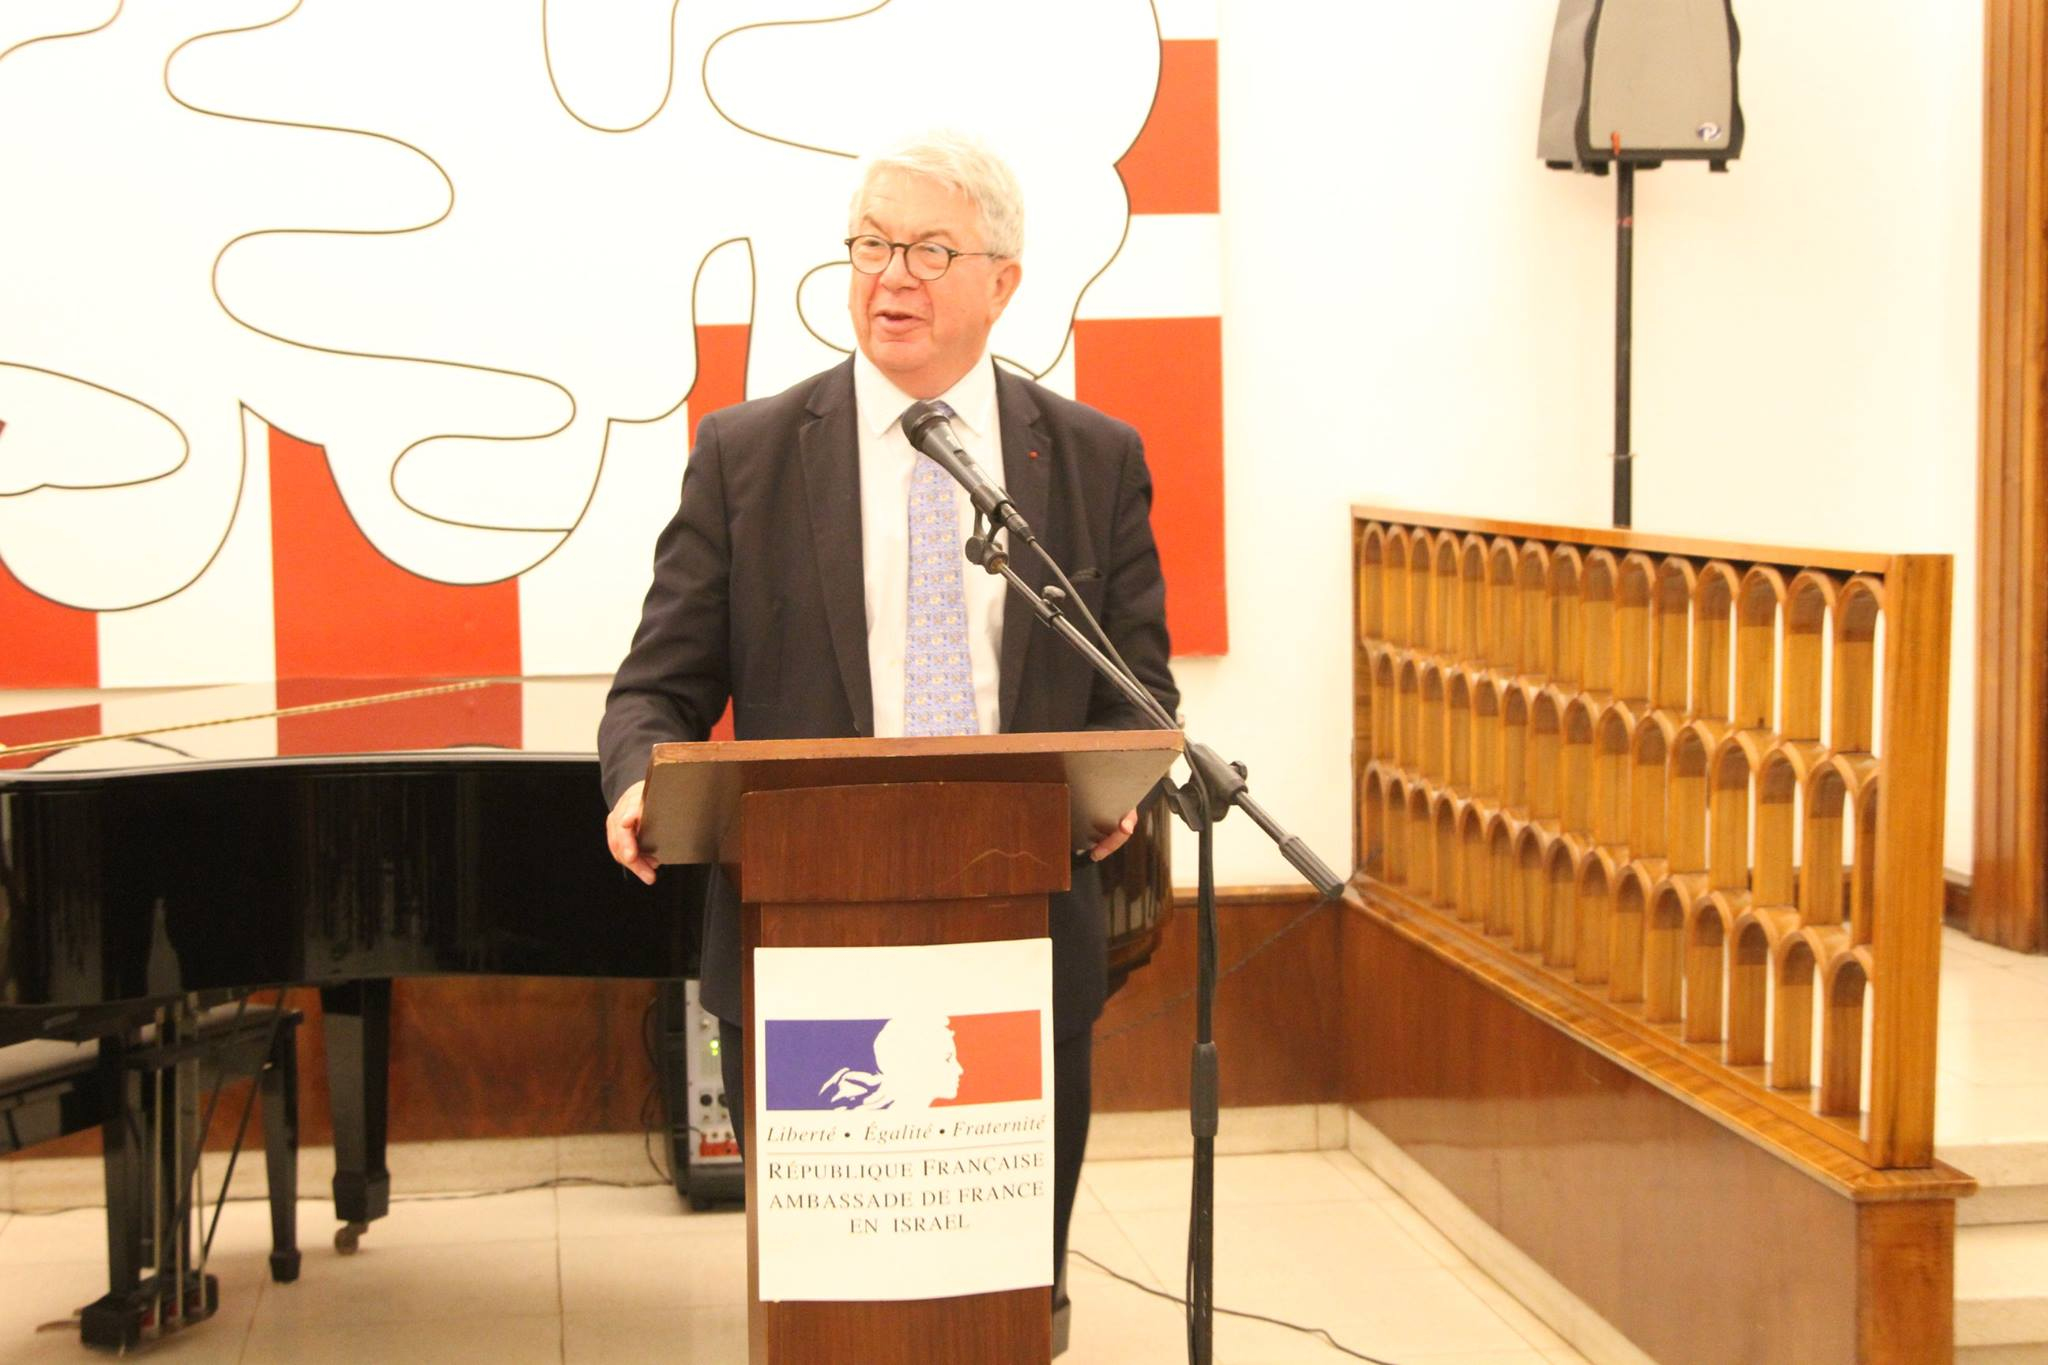 Credit photos: Ambassade de France en Israël / Elodie Sauvage